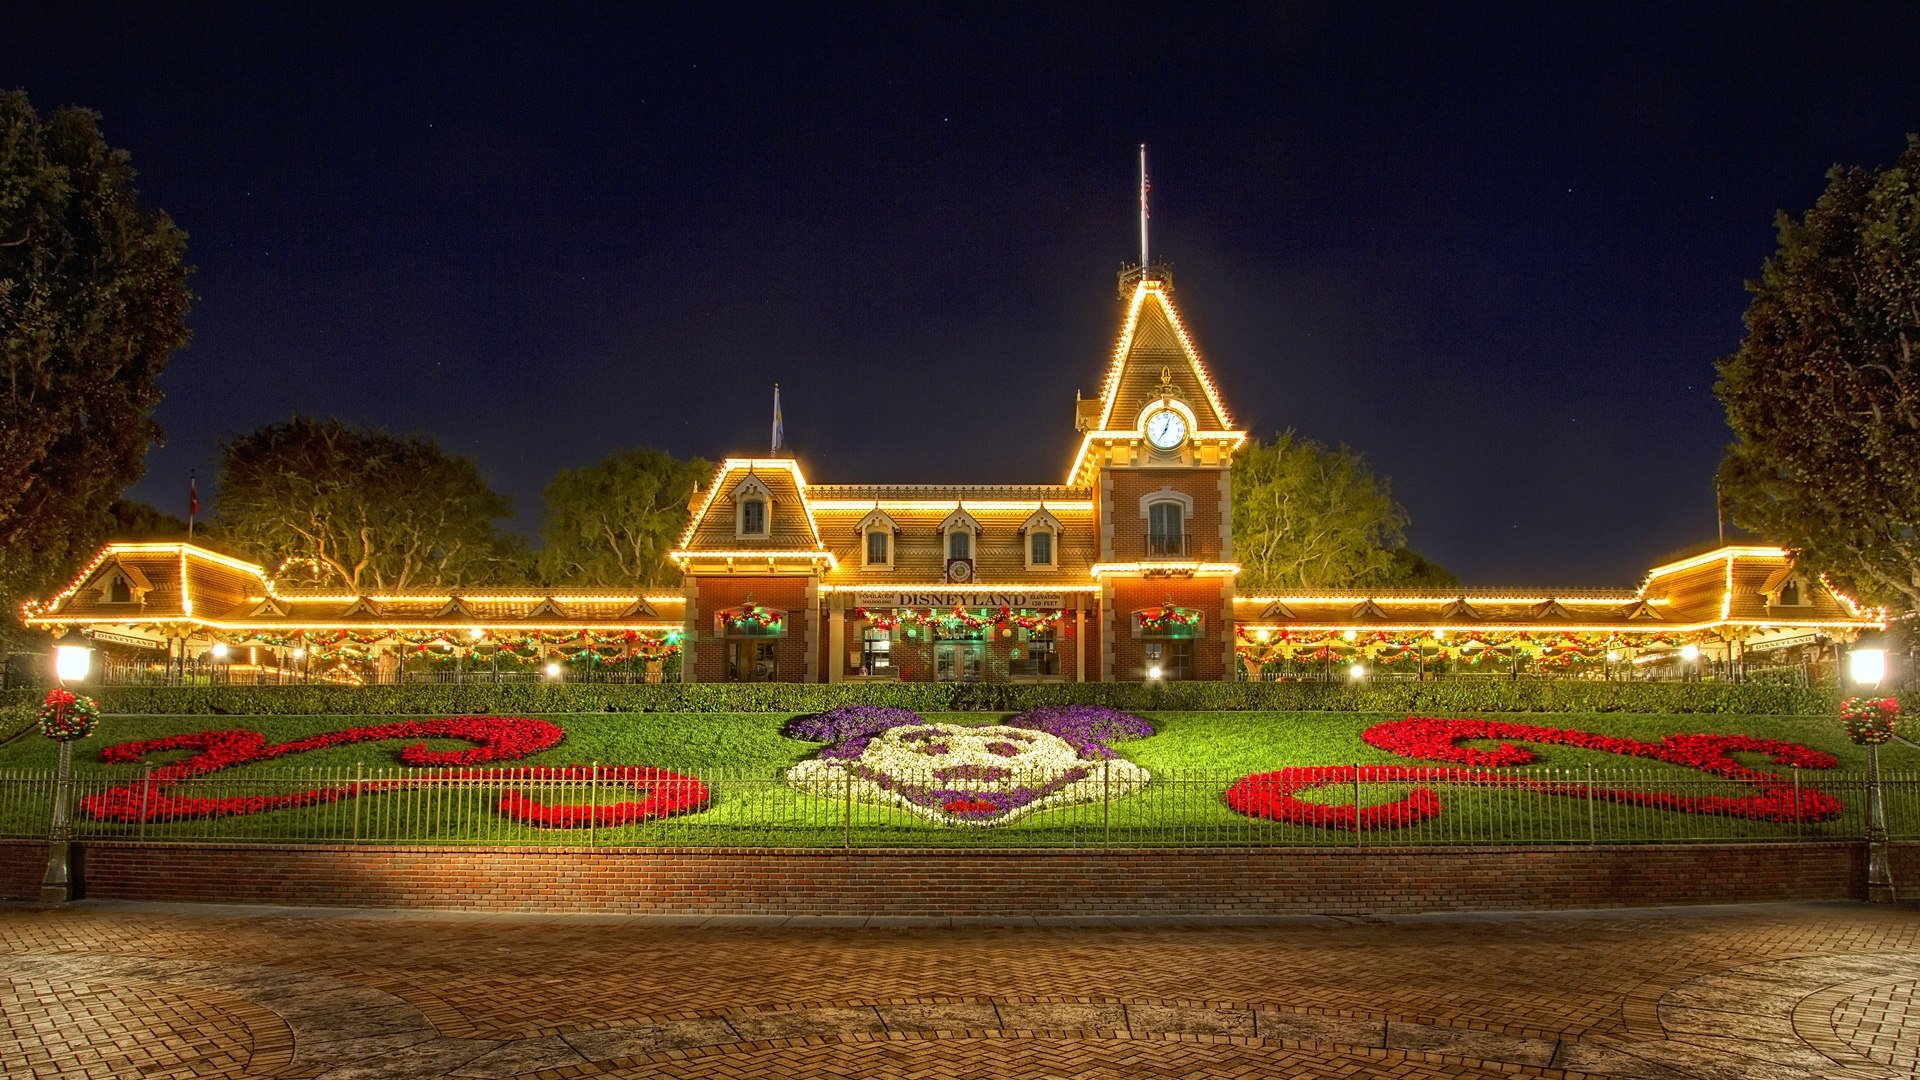 1920x1080 Christmas at Disneyland desktop PC and Mac wallpaper 1920x1080